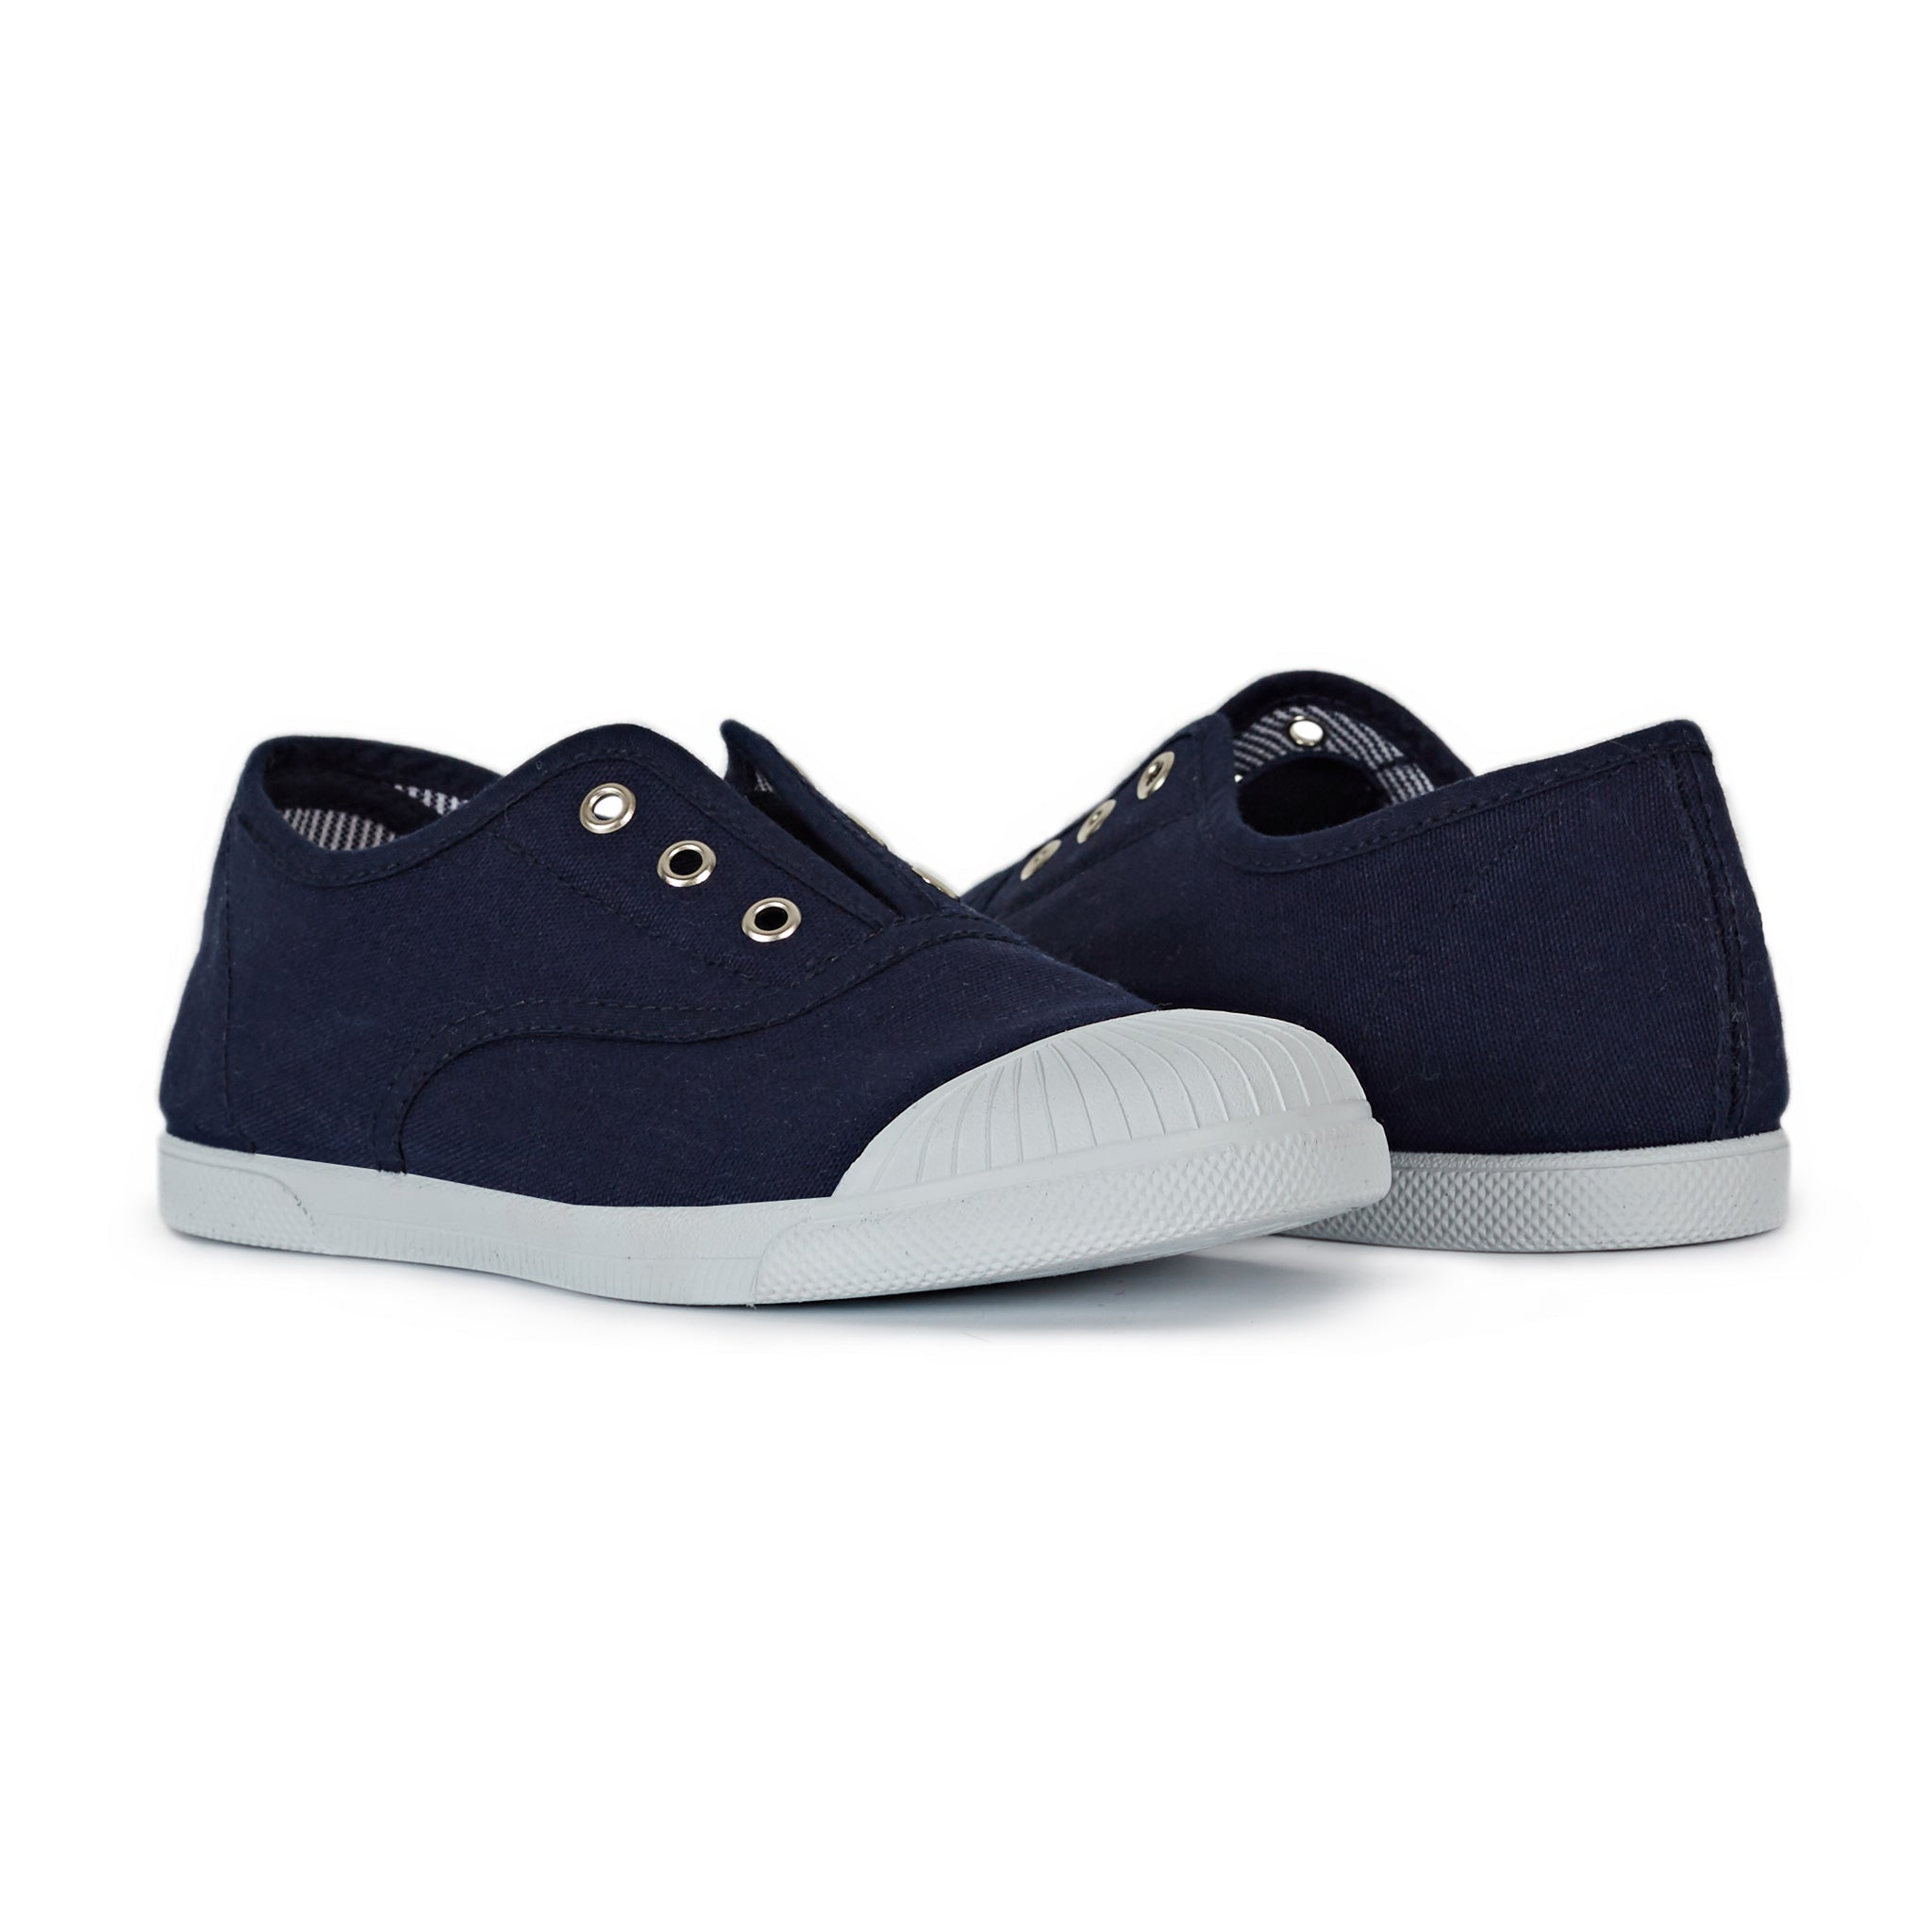 Unisex Canvas Navy Captoe Slip-on Sneakers with Striped Insoles